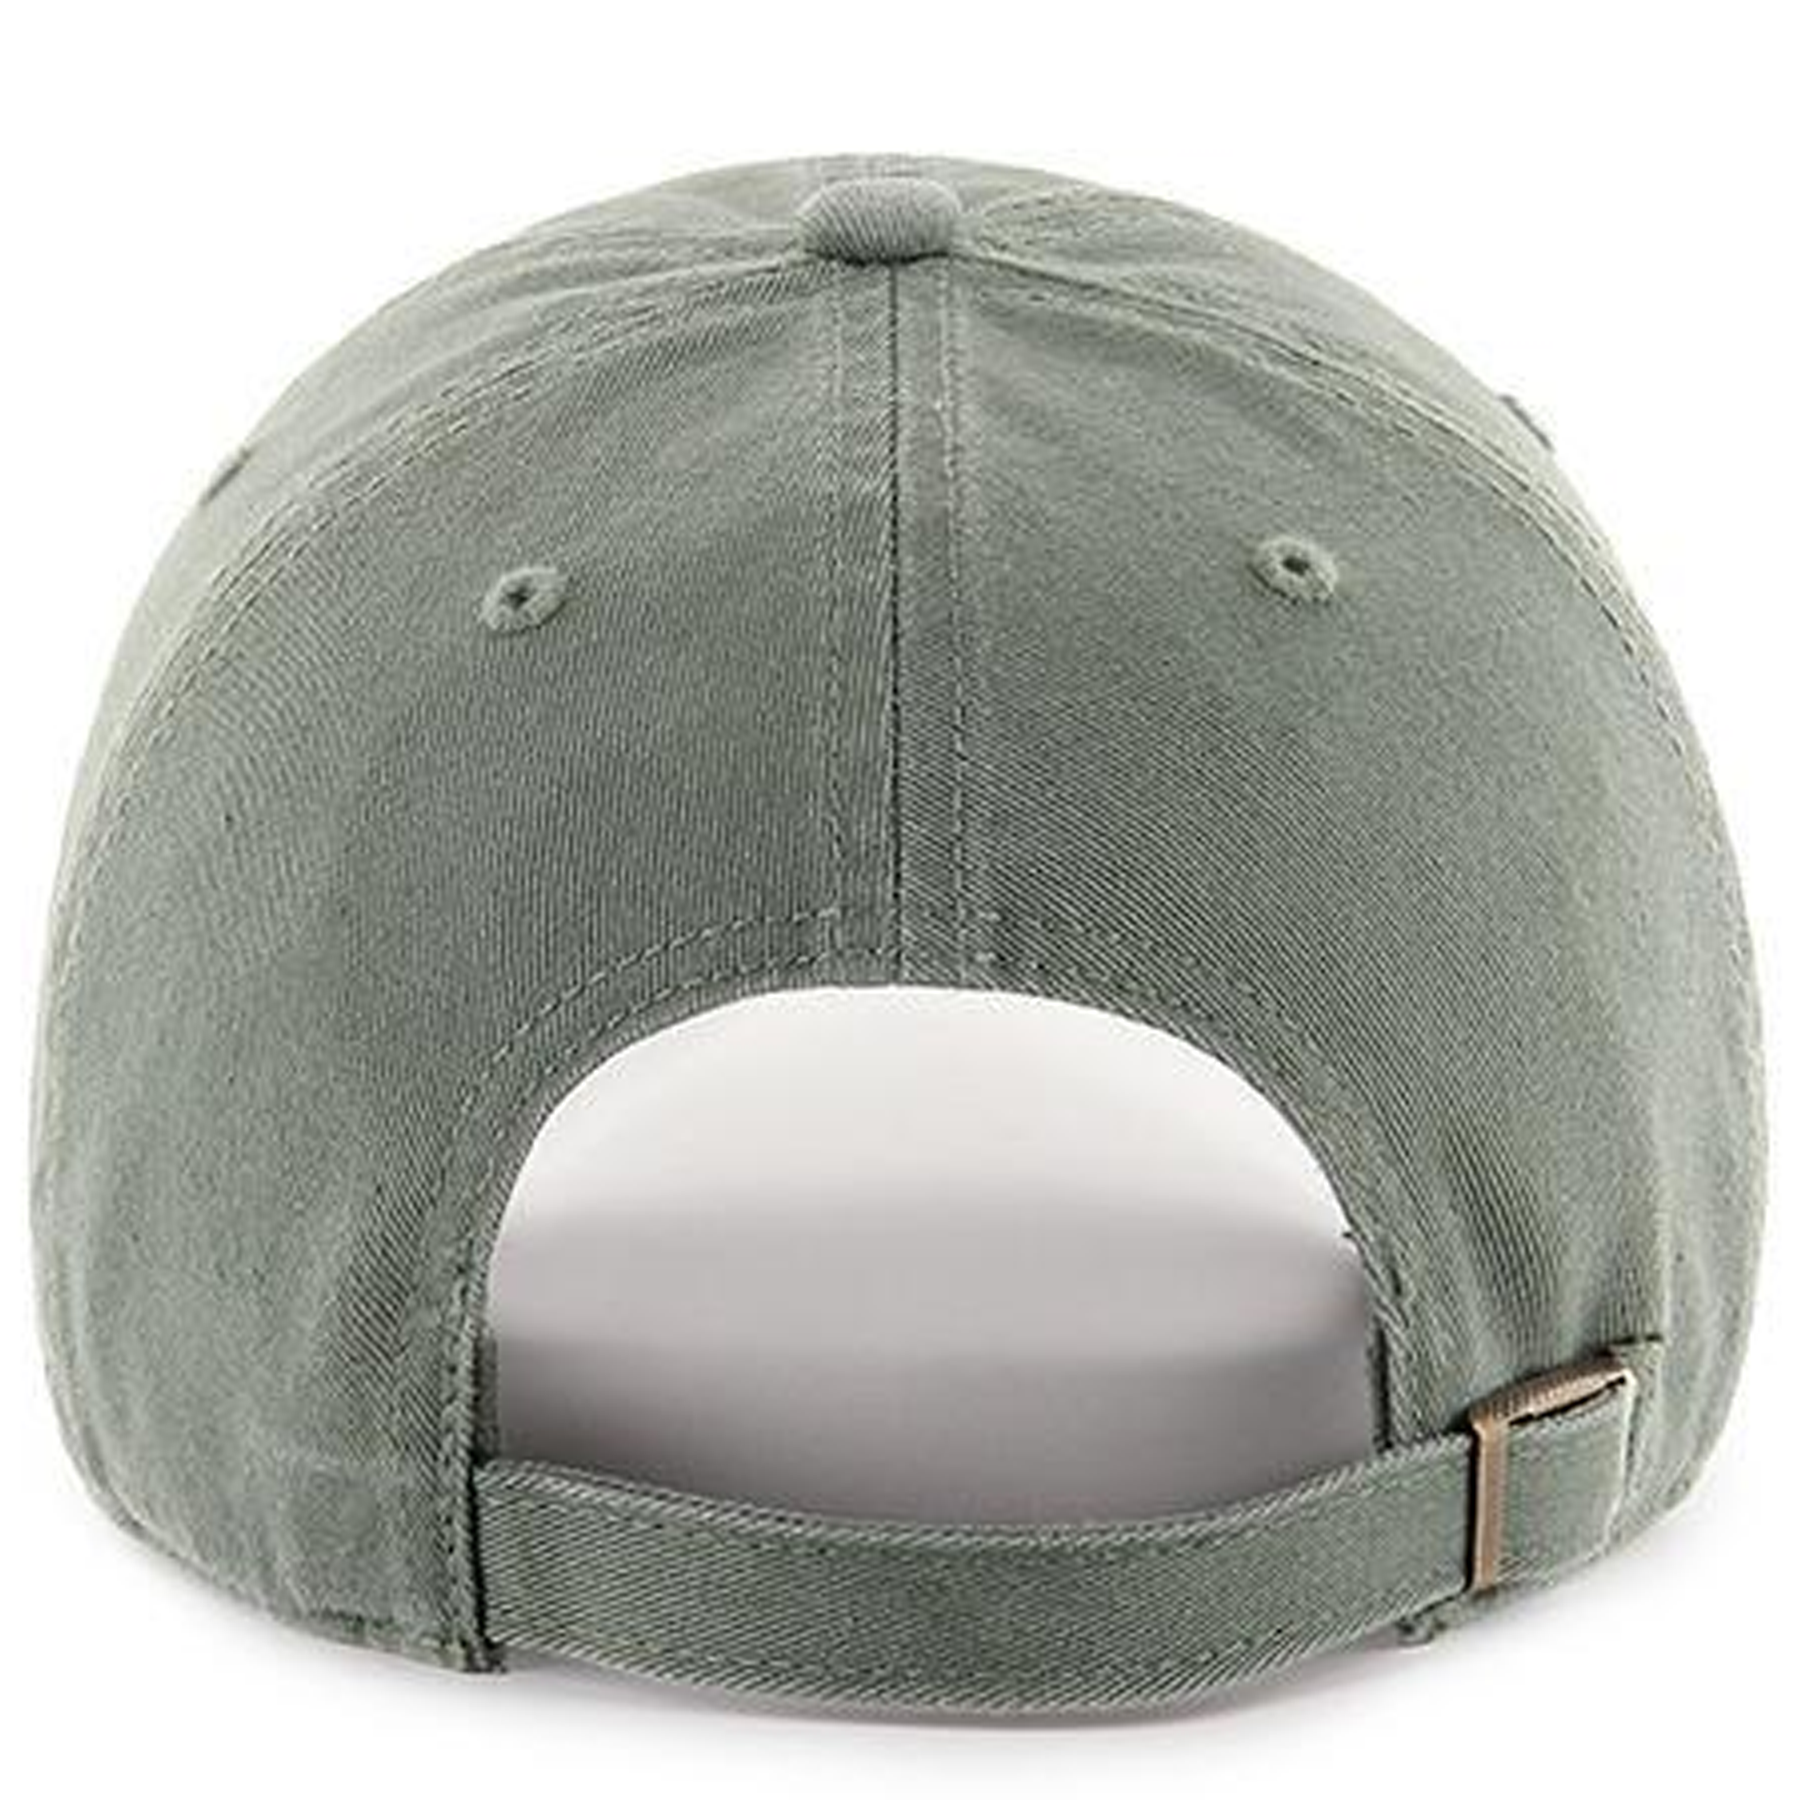 promo code dc831 81d06 australia the back of the new york mets olive womens dad hat is an olive  green